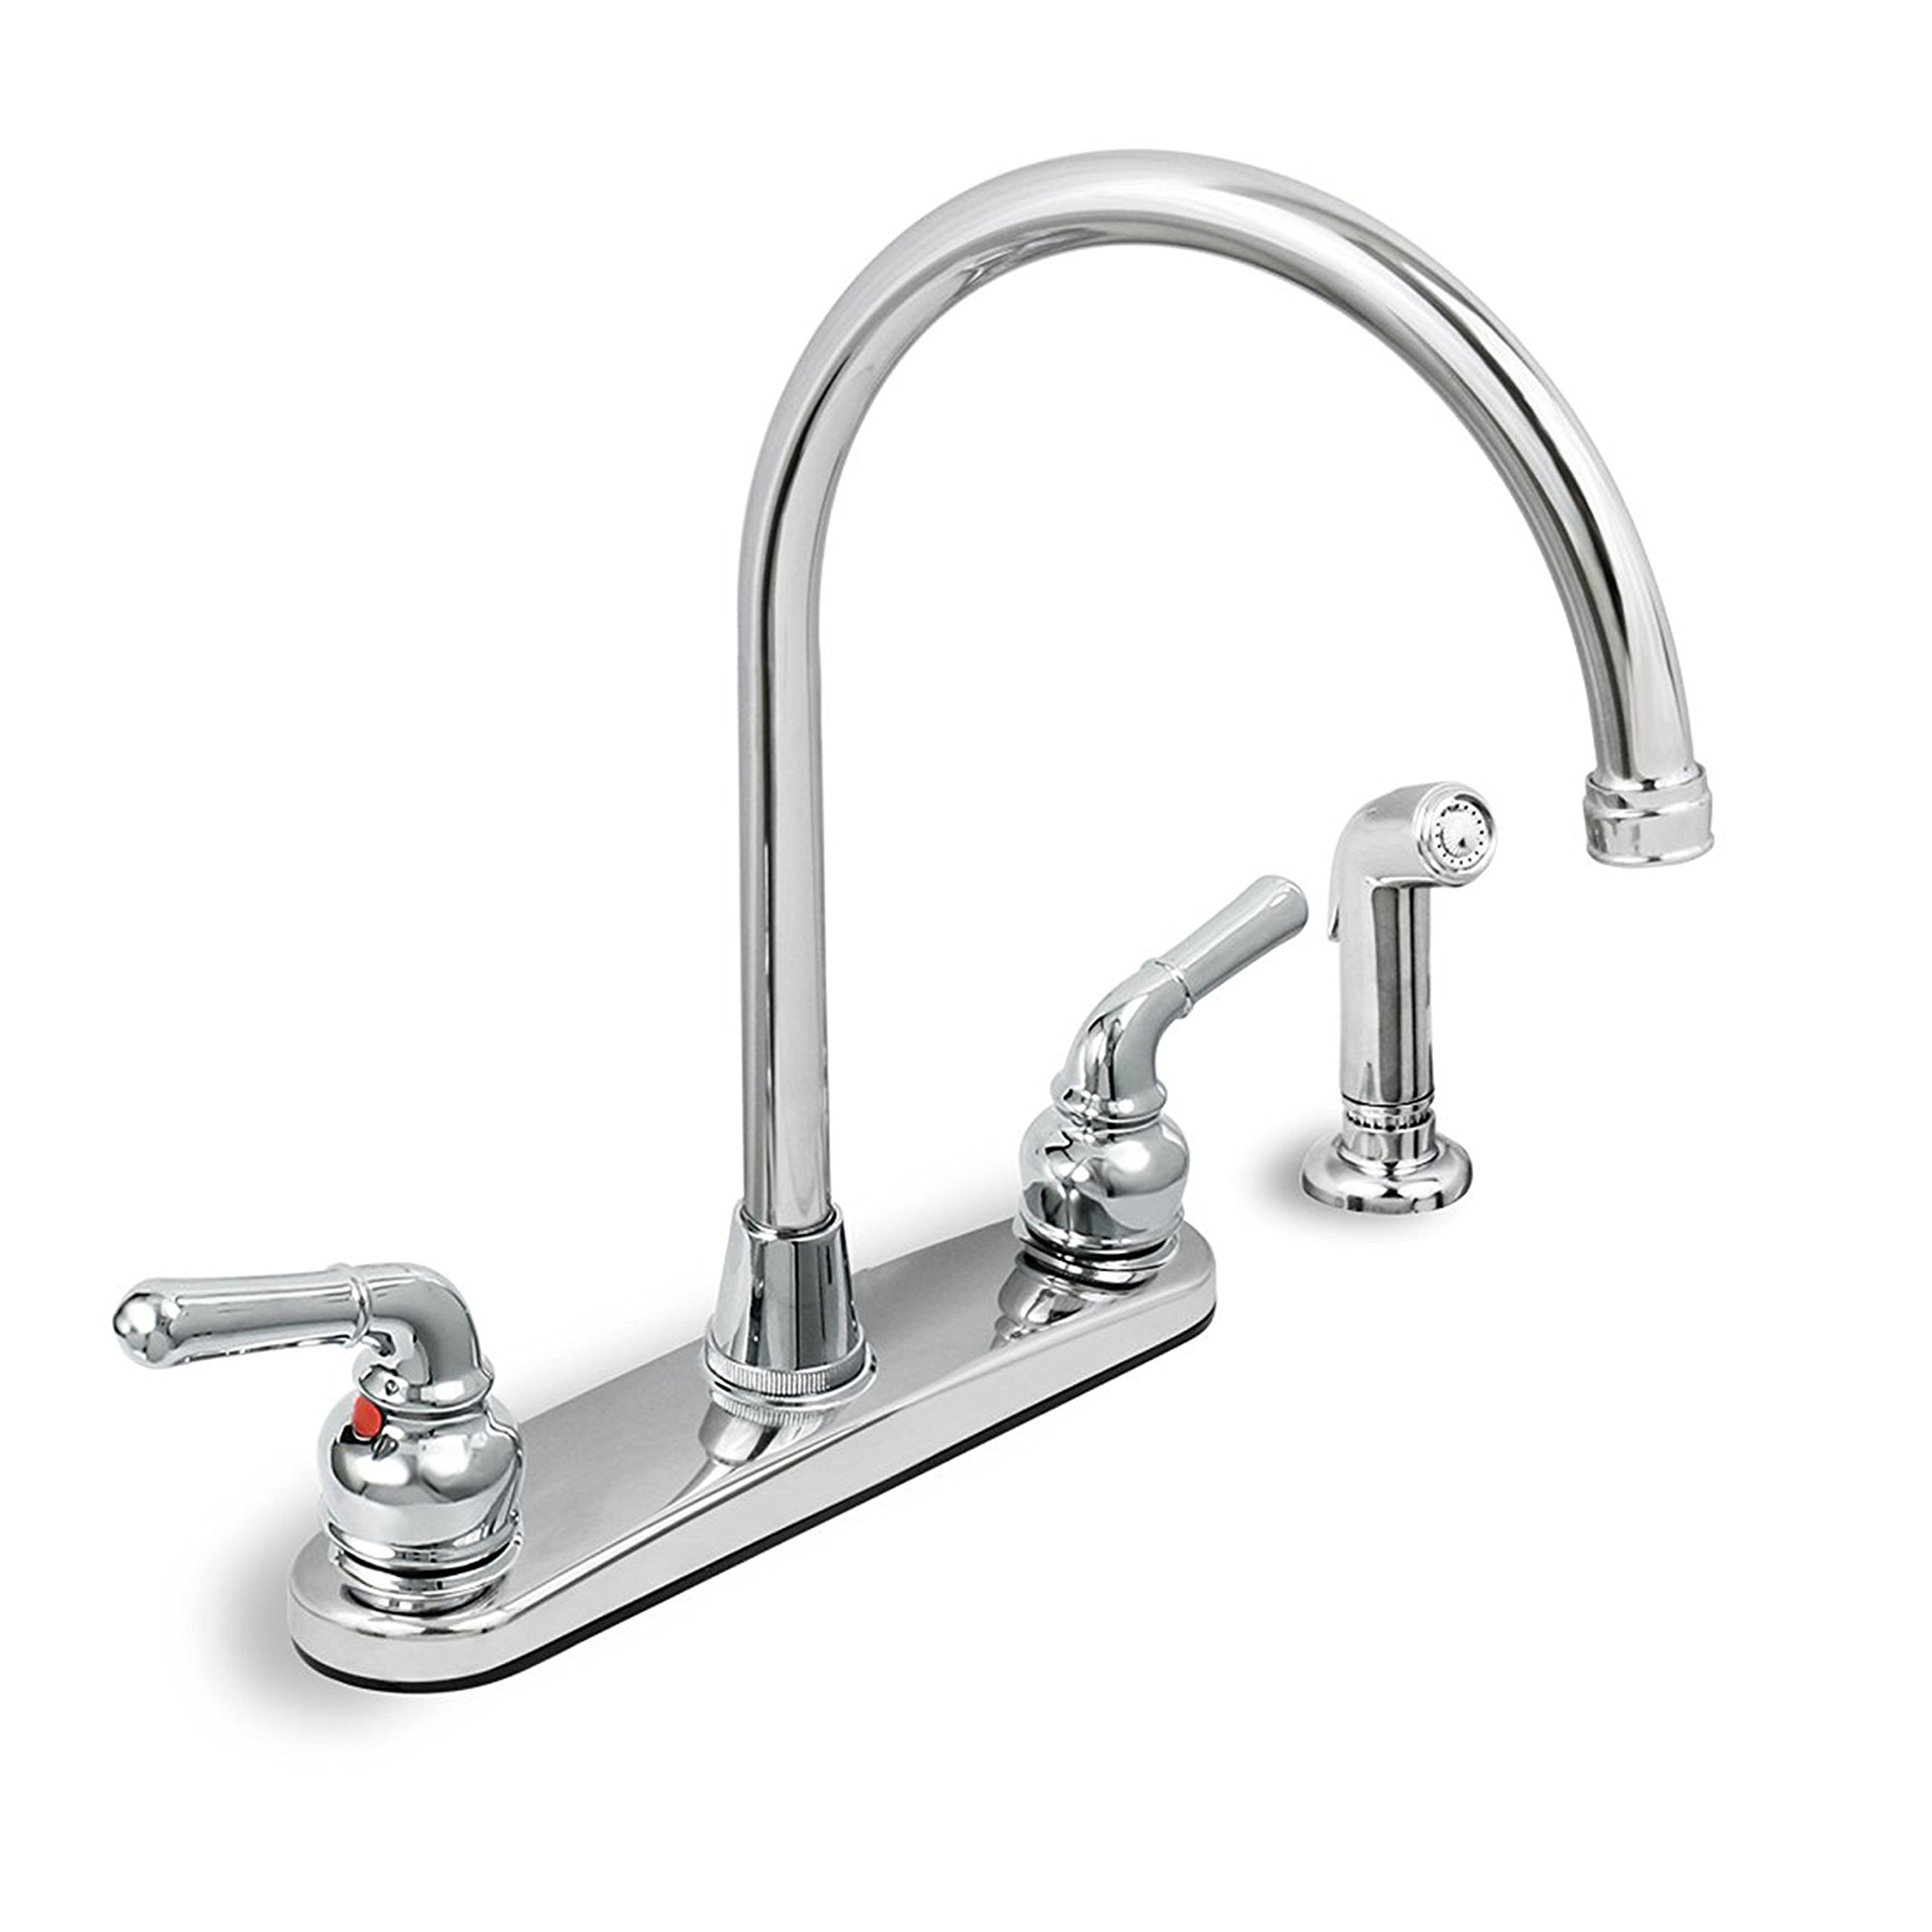 Everflow 17188 Kitchen Faucet with Spray, High Arc Swivel Spout, Chrome Plated Finish, Lead-Free Construction, Pull Out Side Spray Hose, 2 Easy to Operate Metal Handle 2.2 GPM Flow Rate Easy to Use by Everflow Supplies